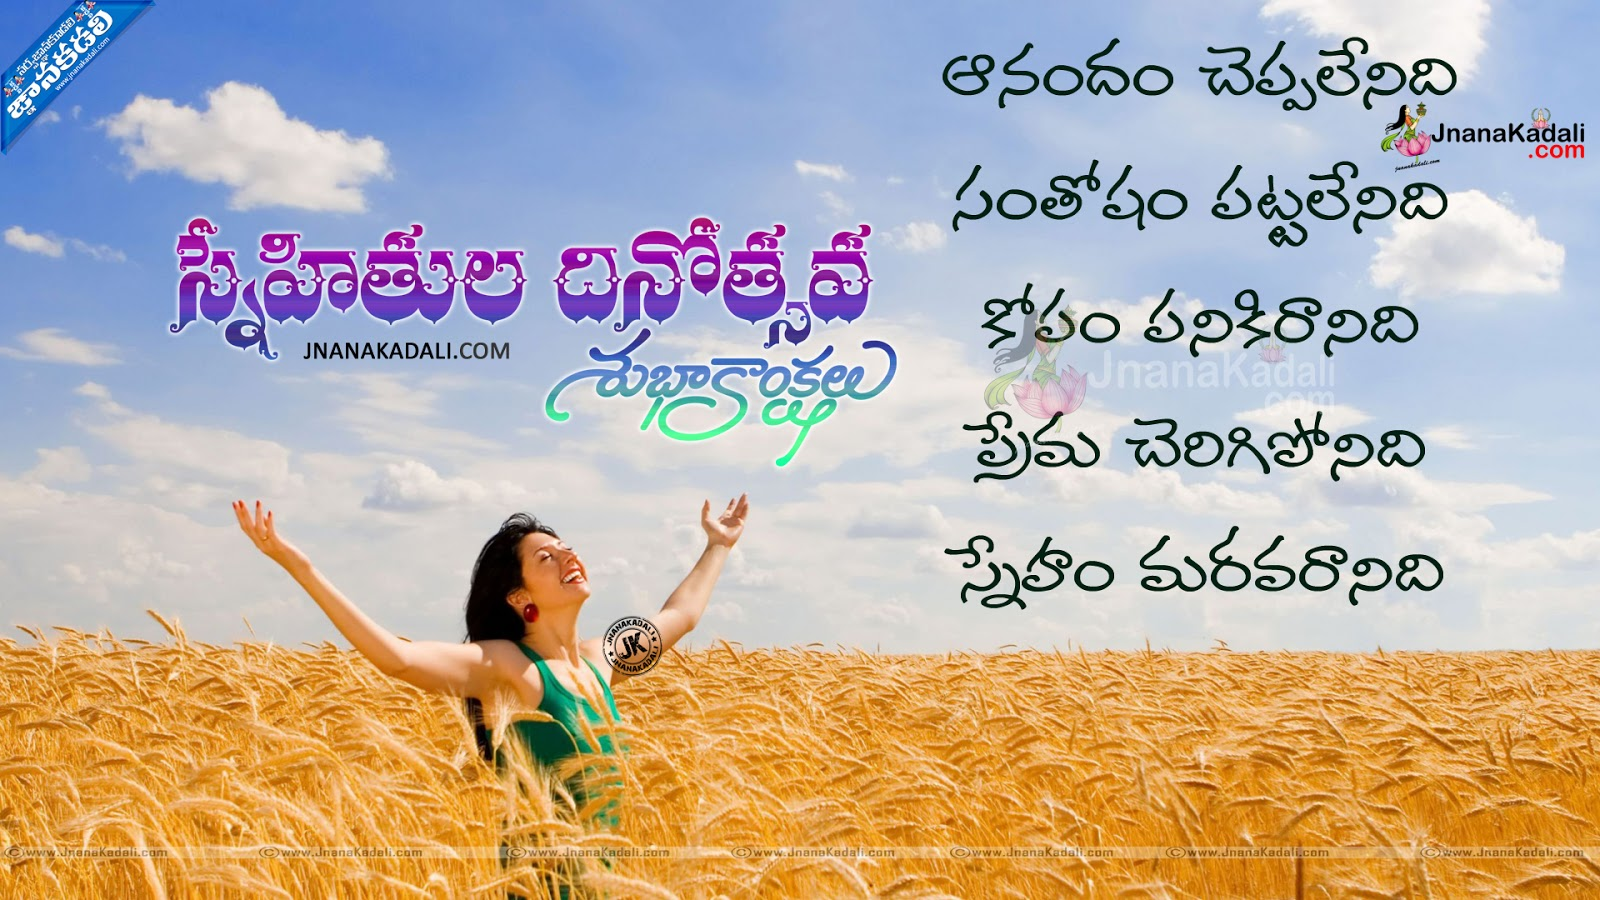 Friendship Day Telugu Quotes Wishes Greetings Images - Best Friend Friendship Day Quotes In Telugu , HD Wallpaper & Backgrounds